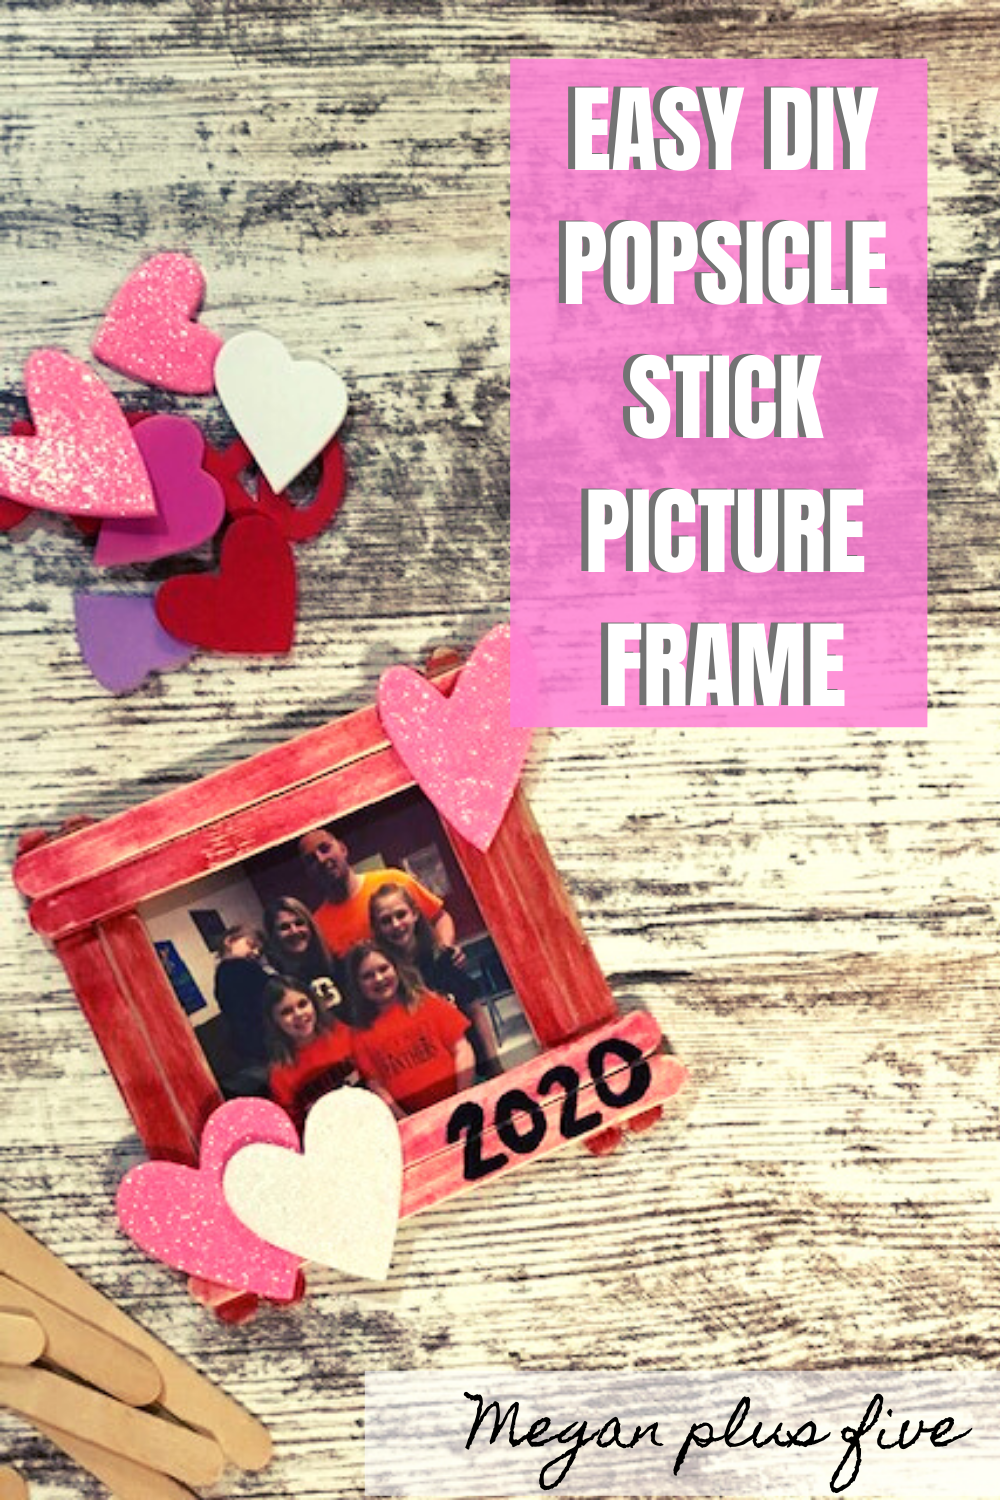 Easy popsicle stick picture frame valentine's day. How to make a mess free Valentine's Day craft with your kids and family. Cute and easy popsicle stick frame craft for kids.